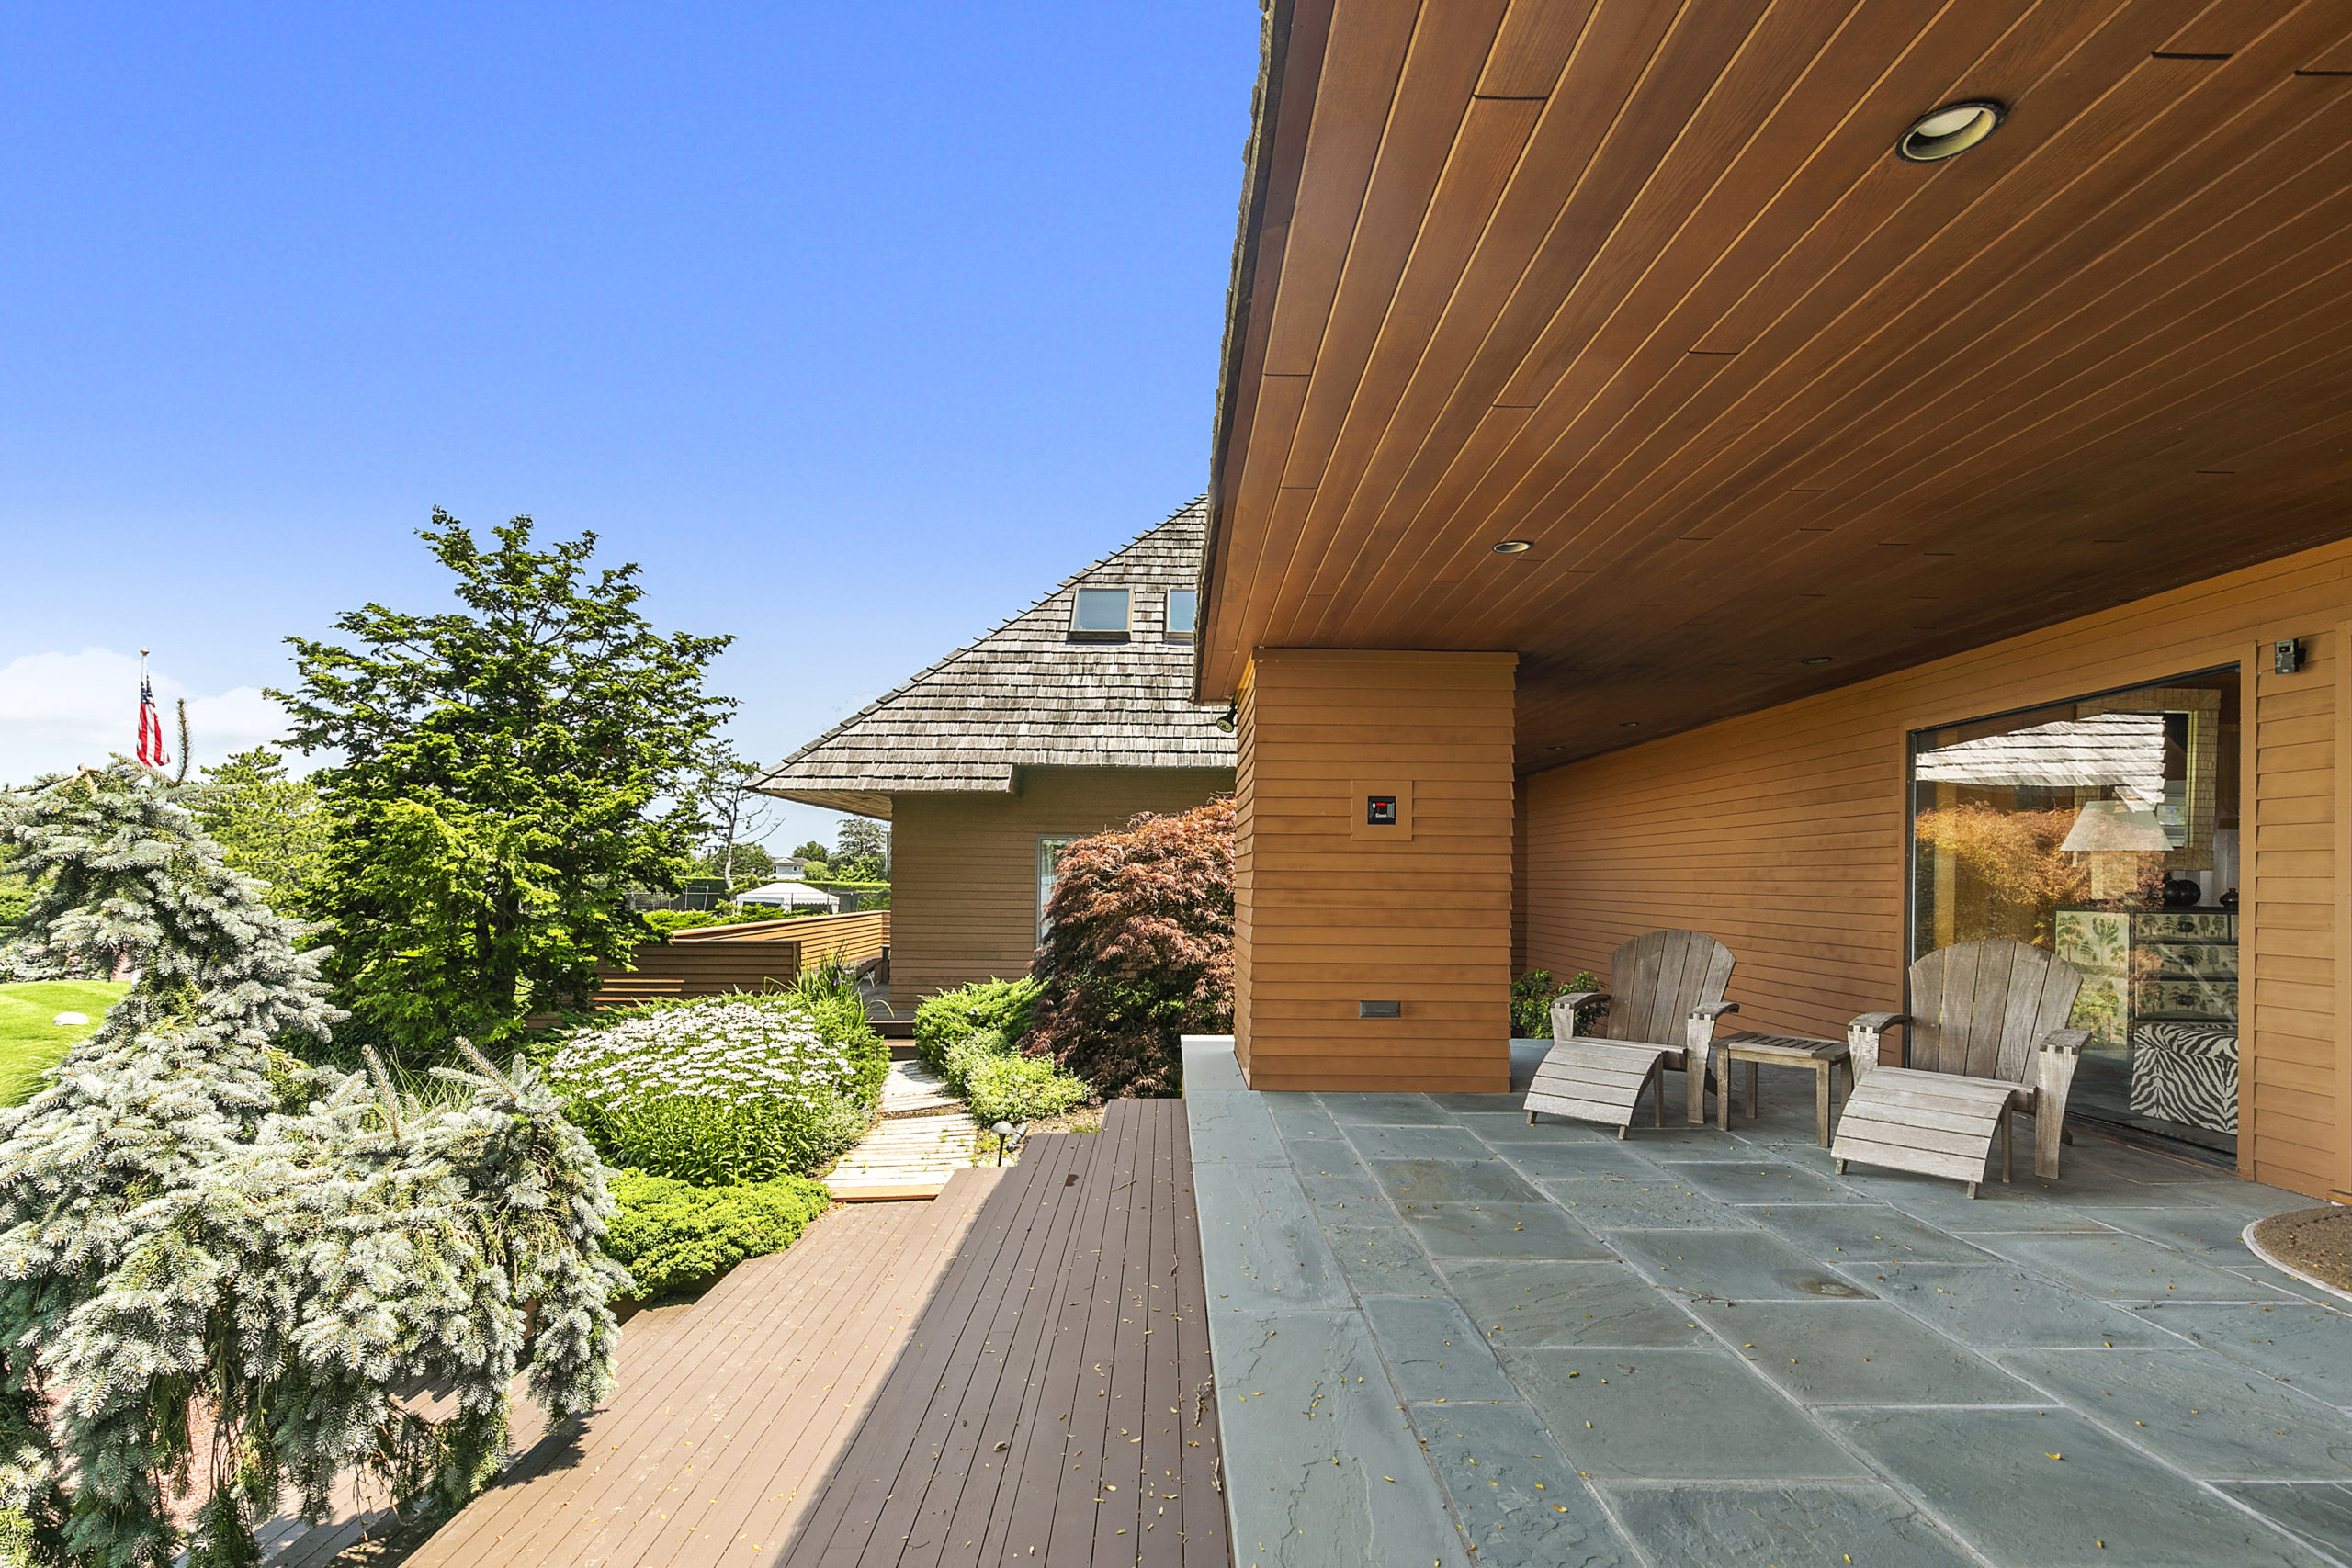 Norman Jaffe designed the estate at  2 & 4 Seascape Lane in Quogue, which is on the market for $18 million. COURTESY DOUGLAS ELLIMAN